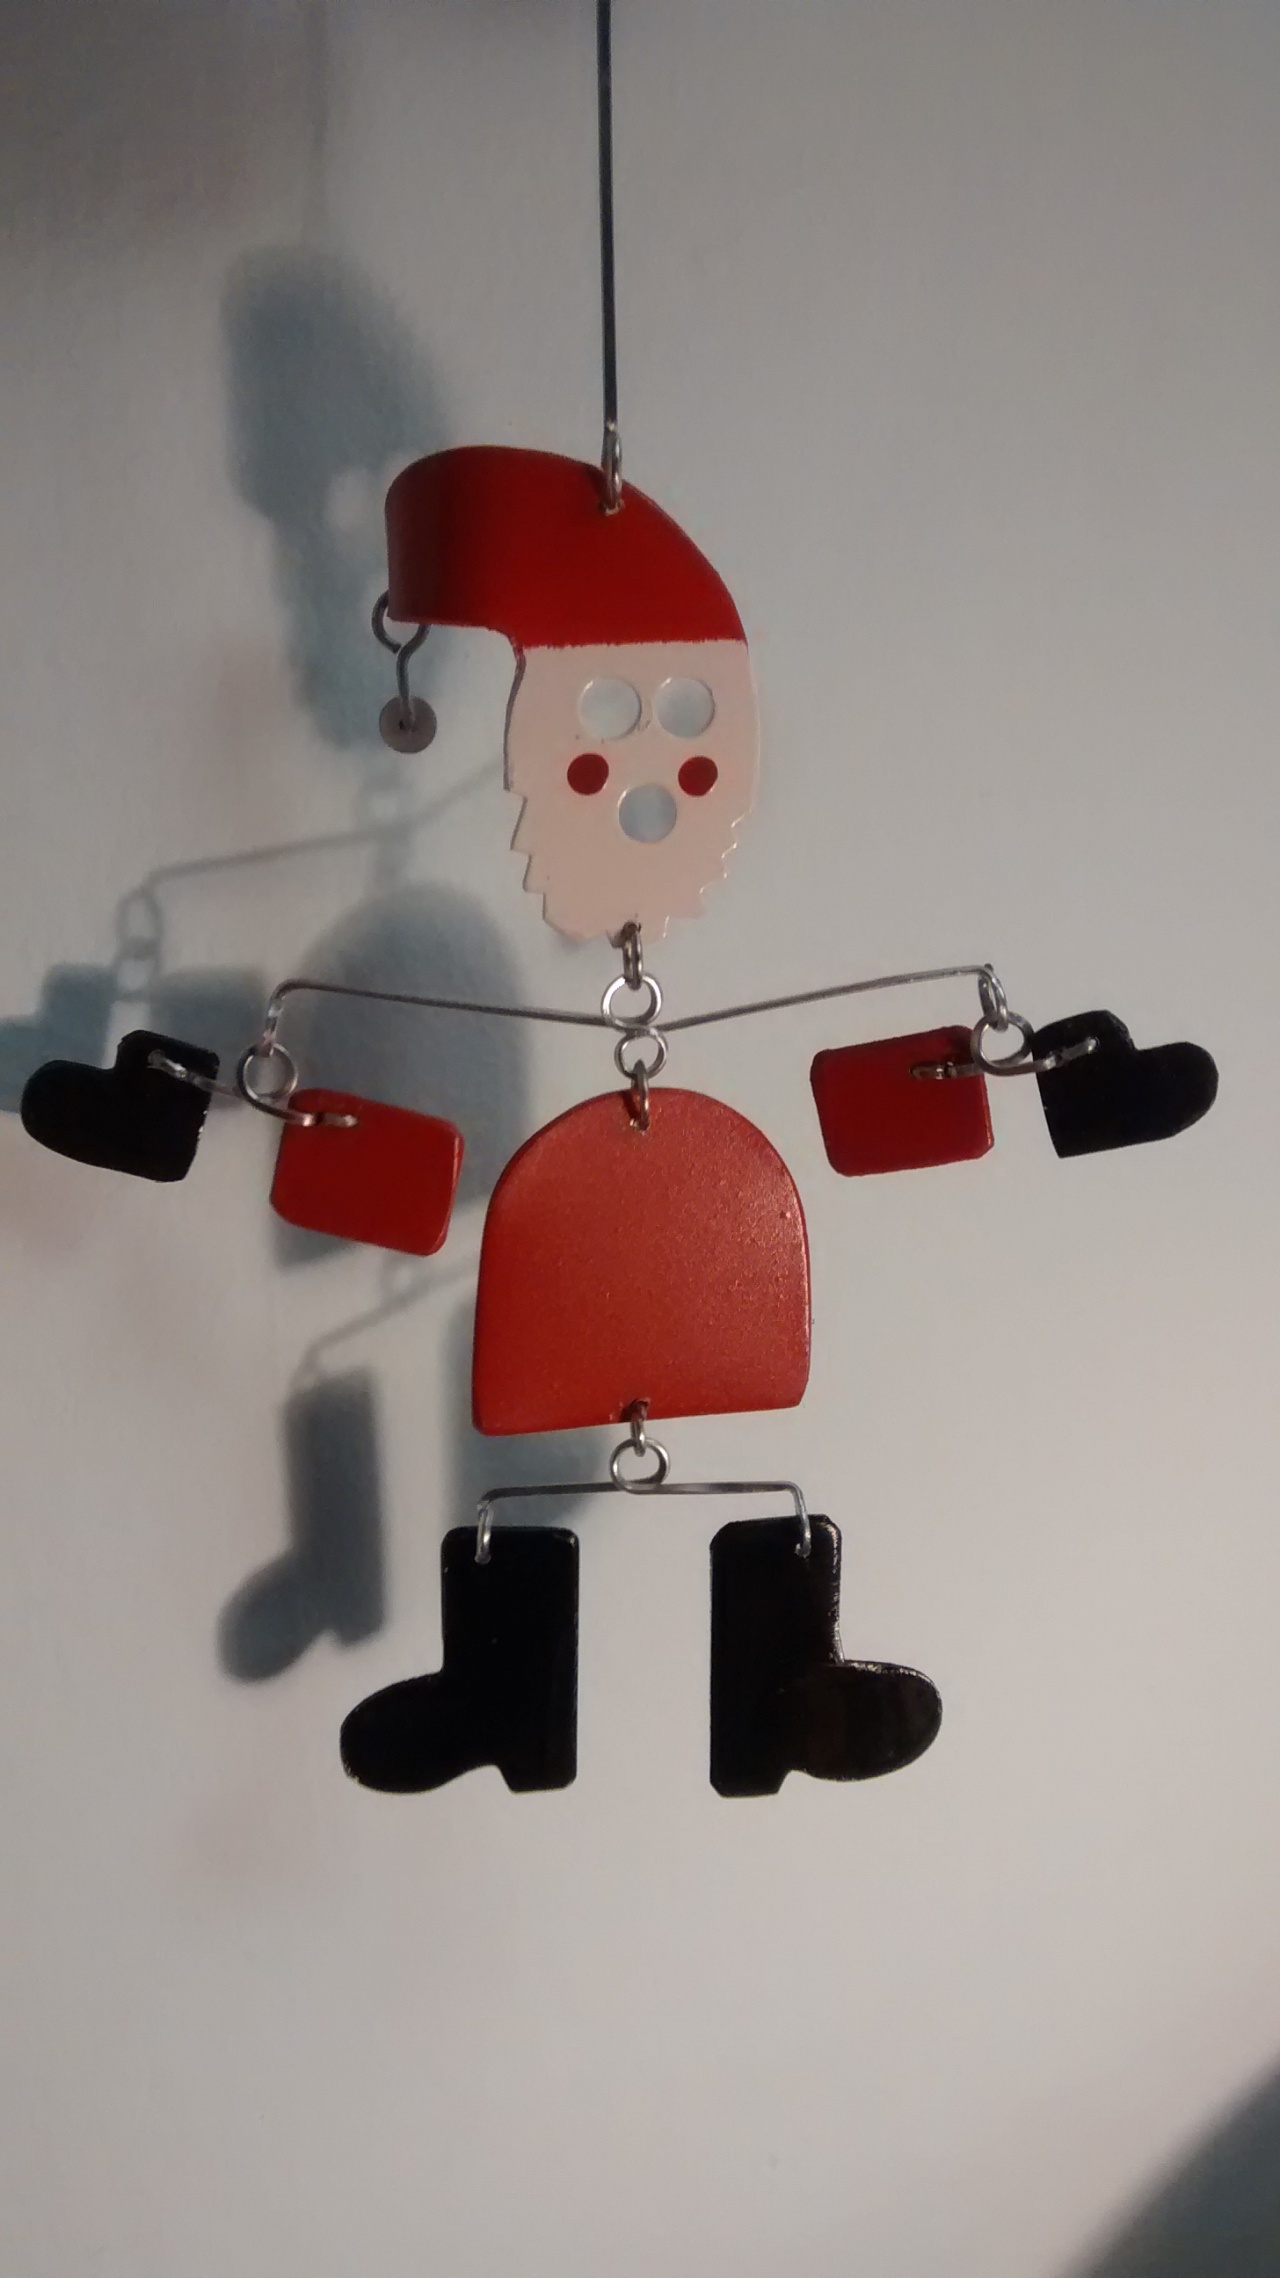 13/14 Years of Christmas Gift Artwork. Dancing Santa